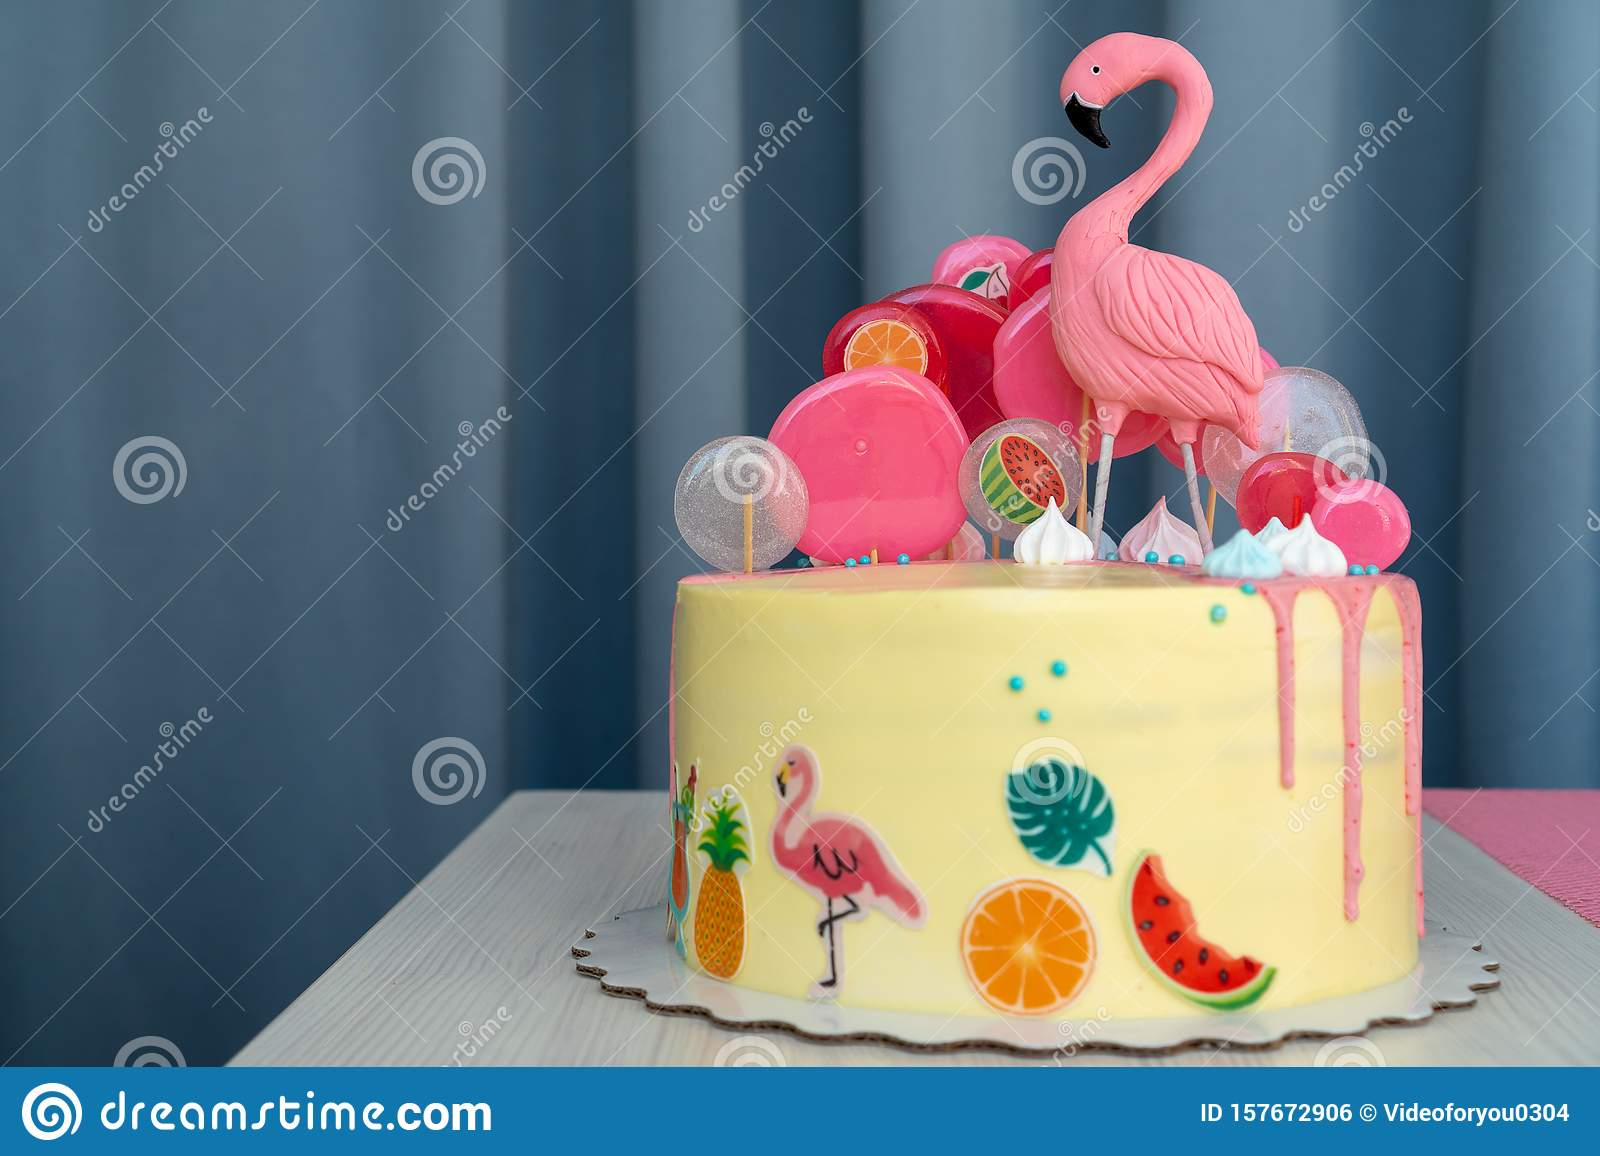 Incredible Flamingo Cake At The Hawaiian Party Childrens Birthday Cake Aon Funny Birthday Cards Online Alyptdamsfinfo